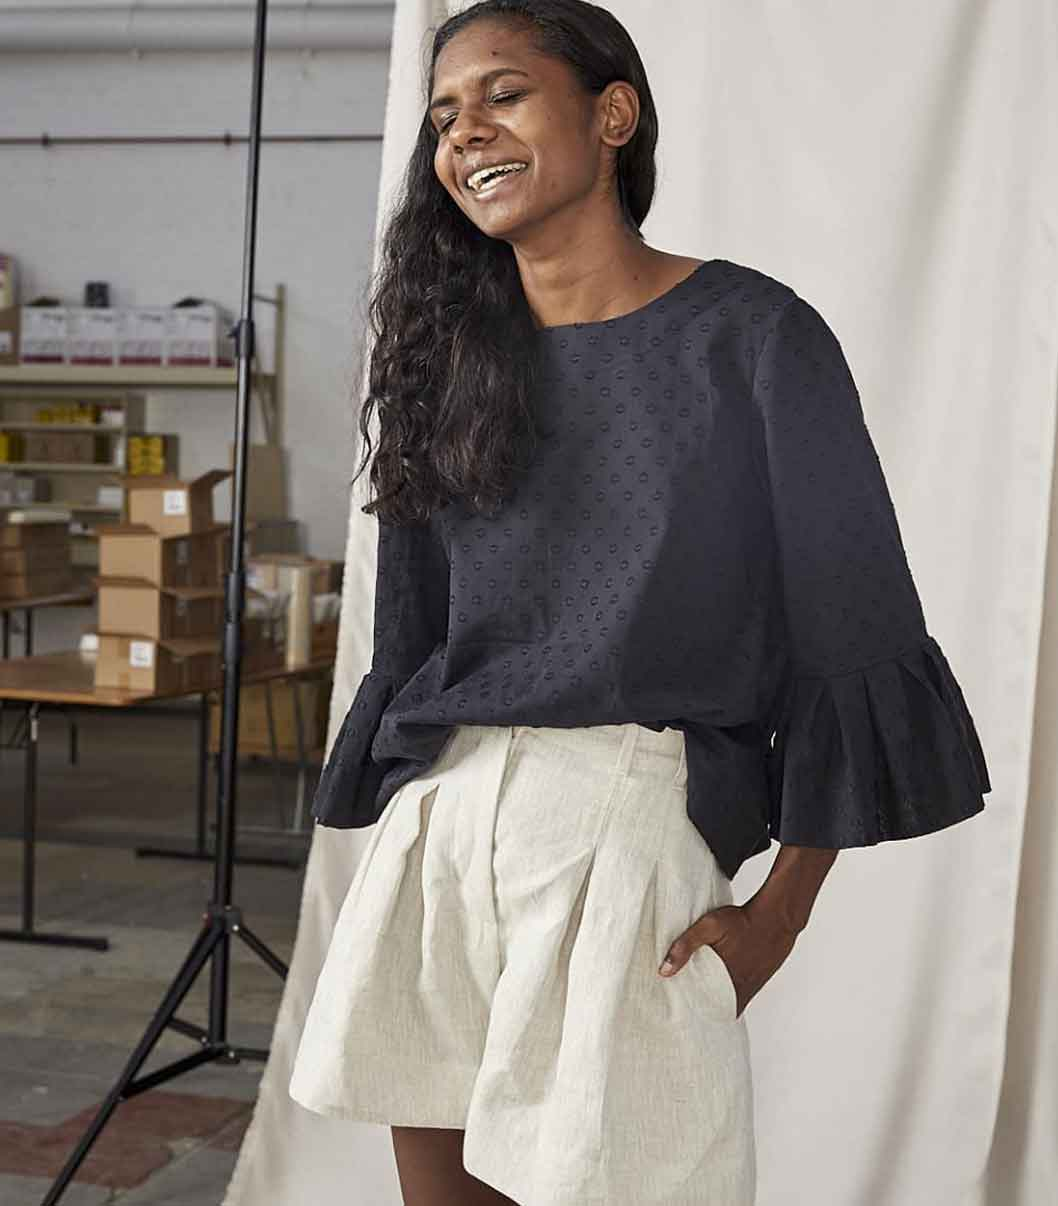 Lois Hazel sustainable ethical fashion label Australia